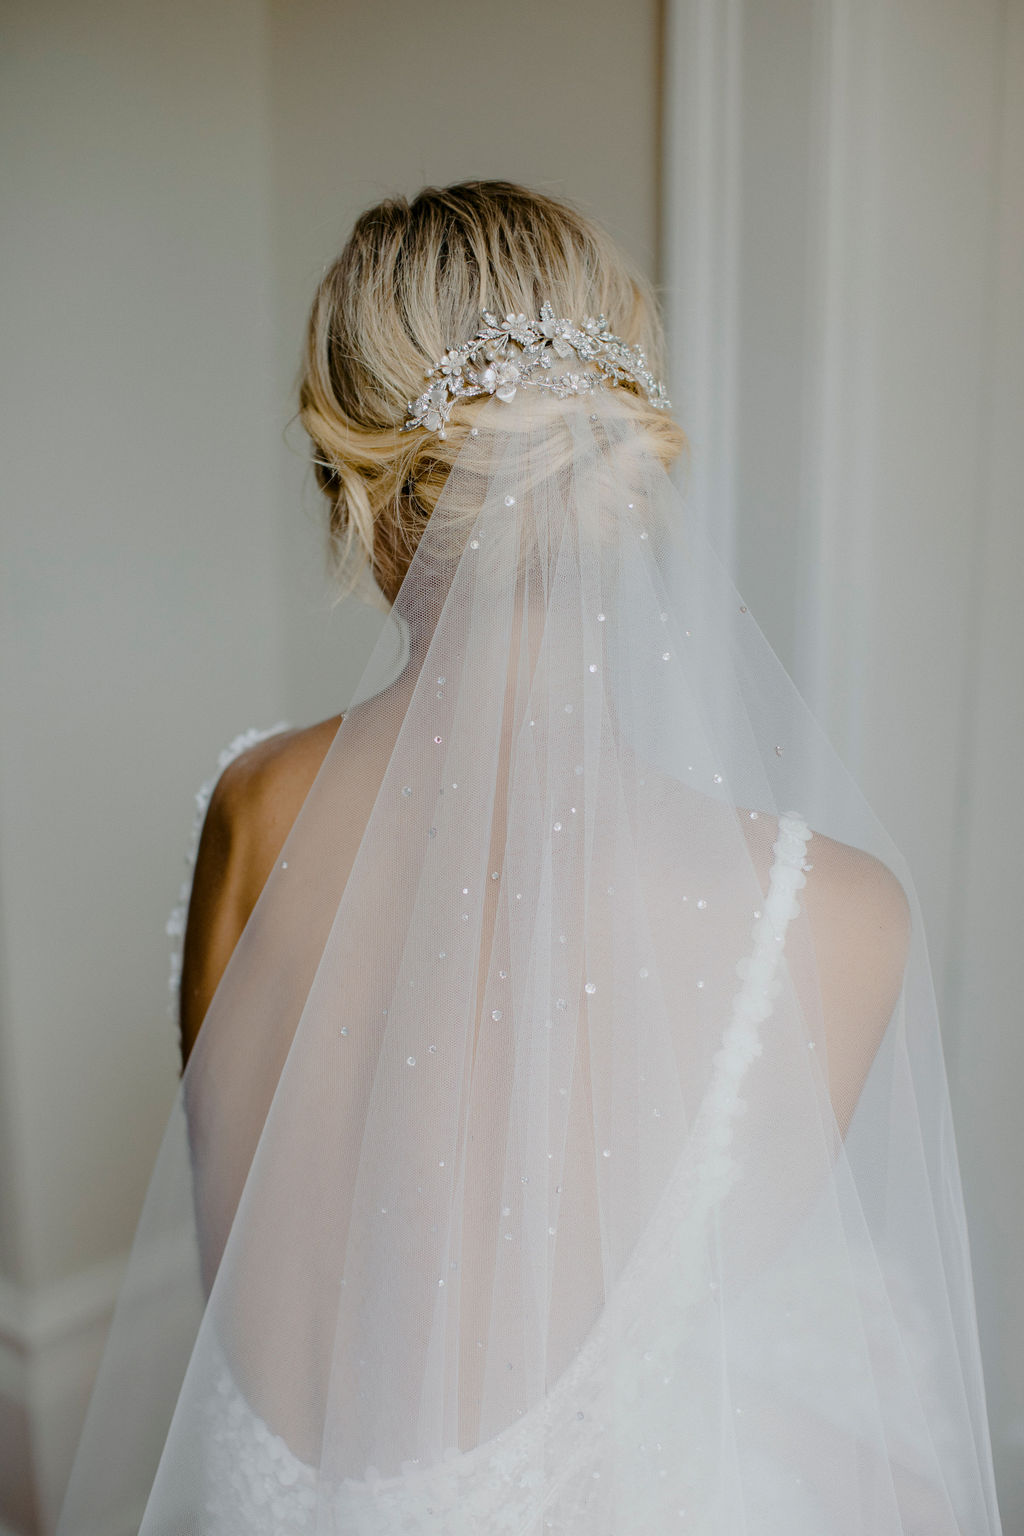 EVENING CRYSTAL WEDDING HEADPIECE and MORNING MIST VEIL by TANIA MARAS, featured on LOVE FIND CO.